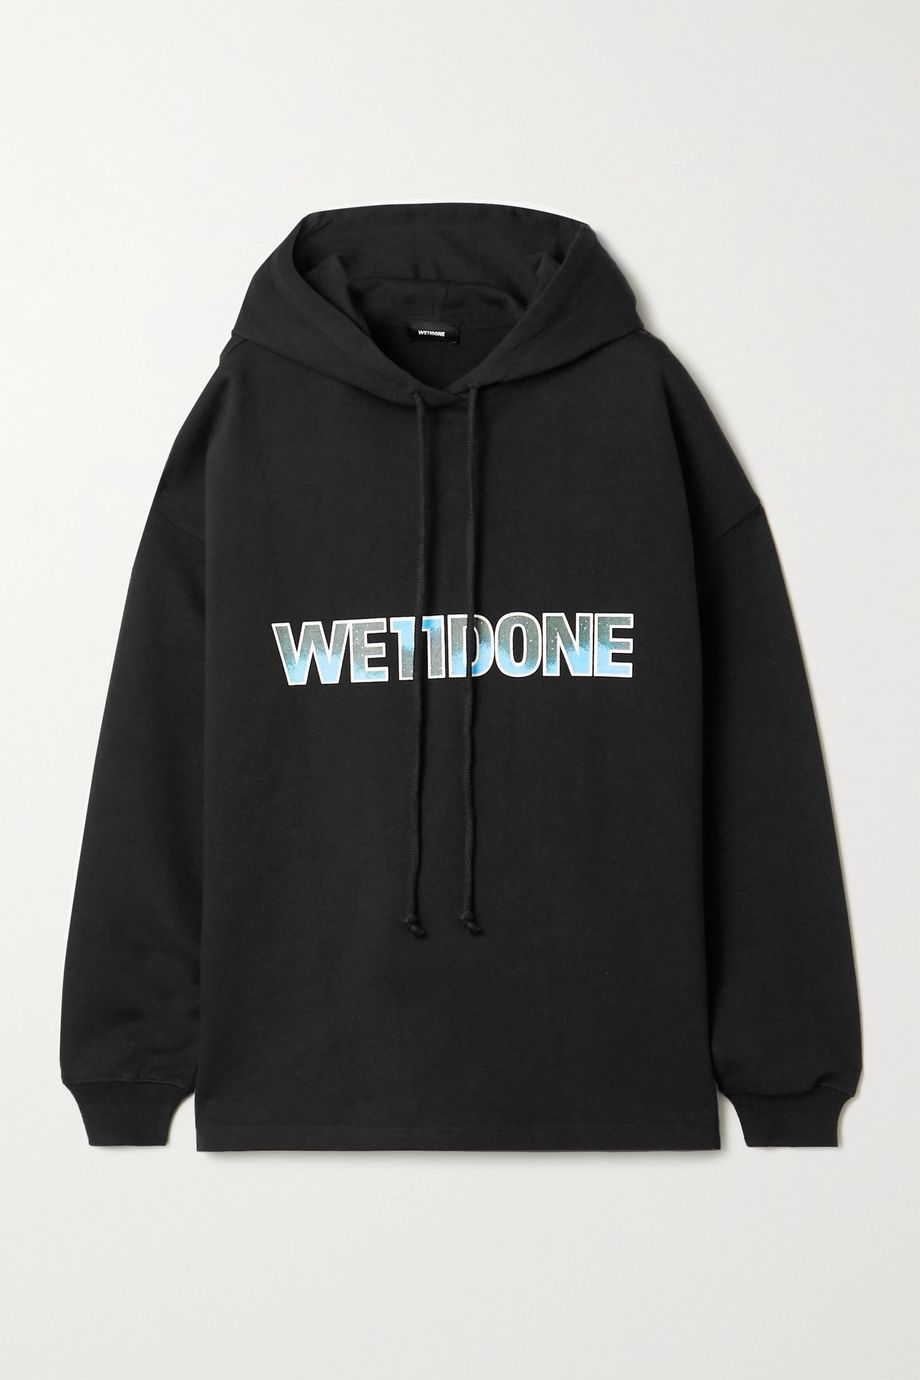 we11done Oversized printed appliquéd cotton-jersey hoodie